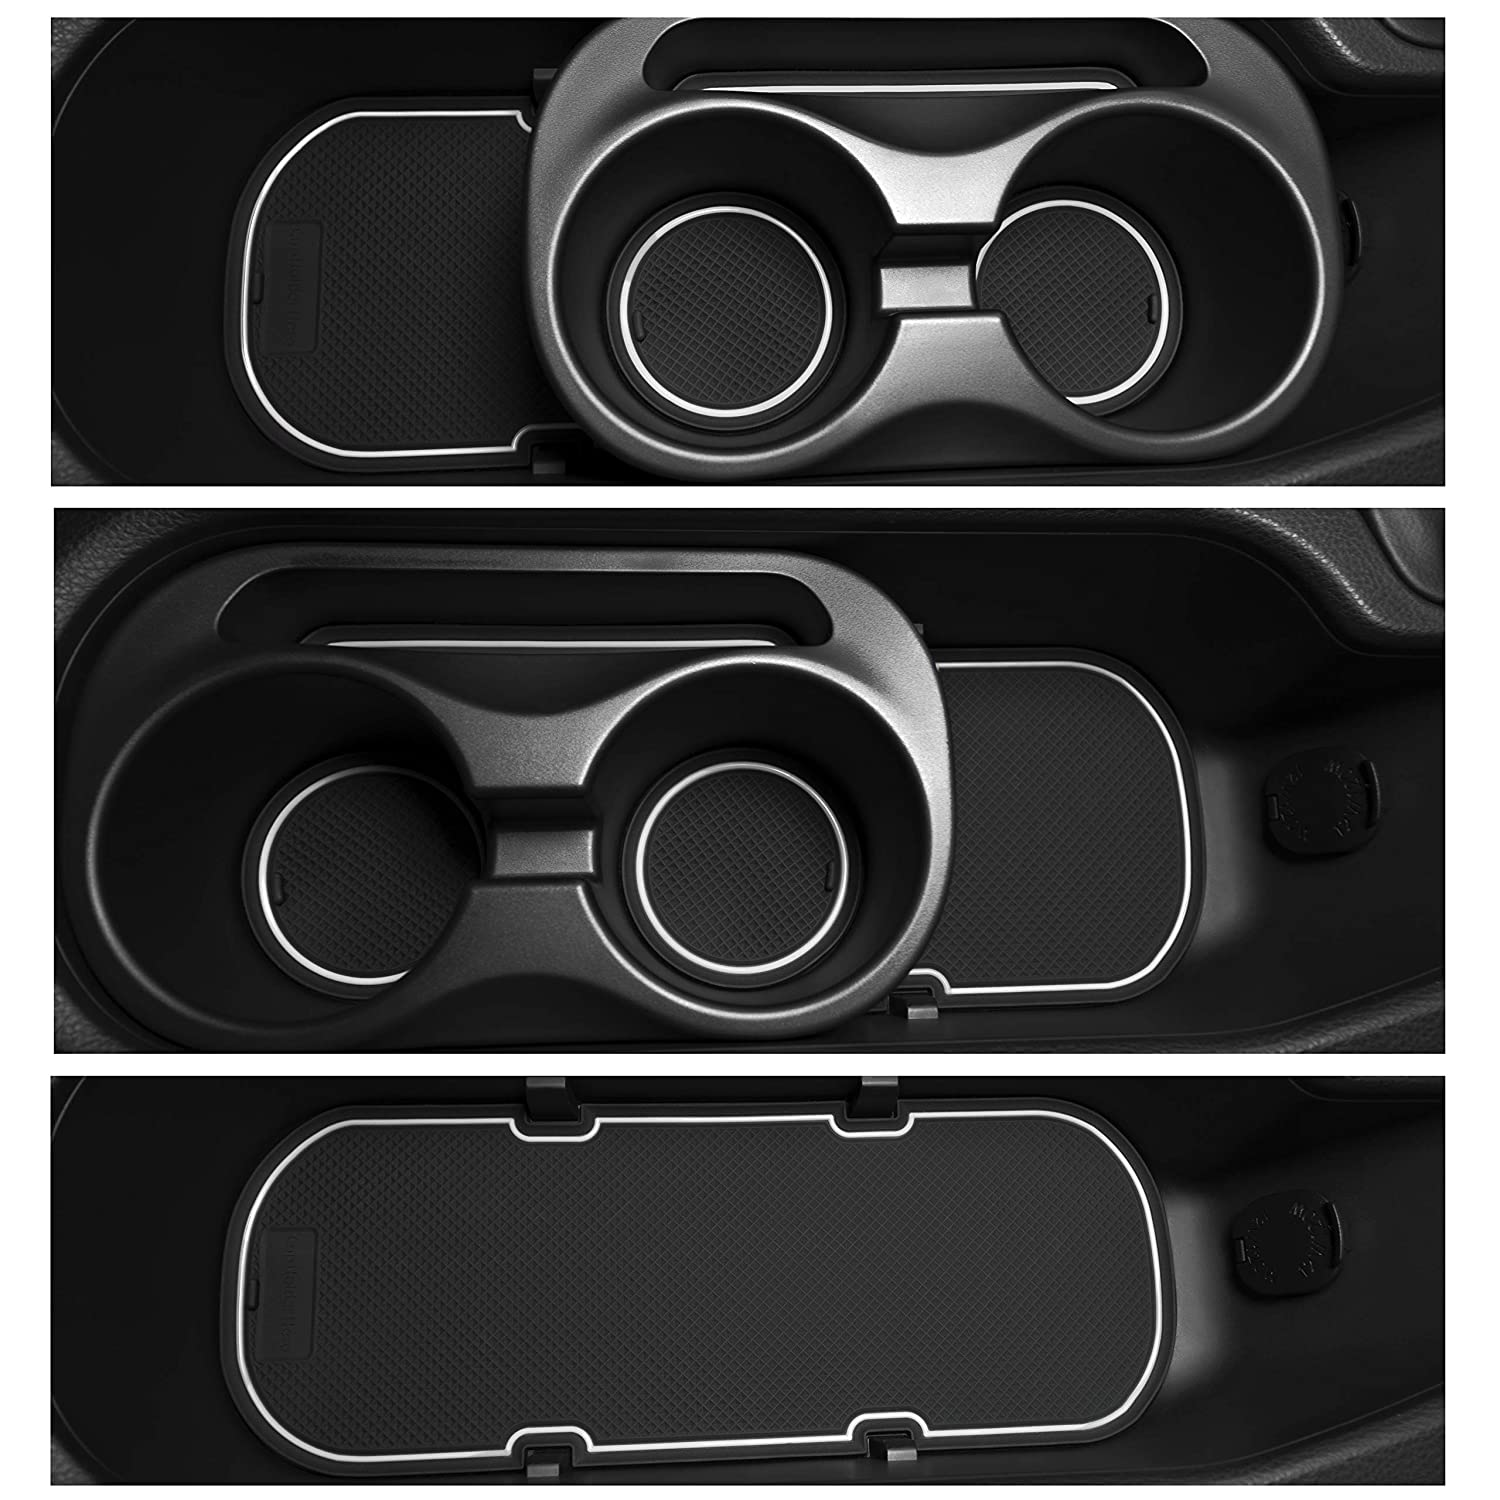 Custom Fit Cup Door Console Liner Accessories Kit for BRZ 86 FR-S 2019 2018 2017 2016 2015 2014 2013 Subaru Toyota Scion 9PC Set Solid Black